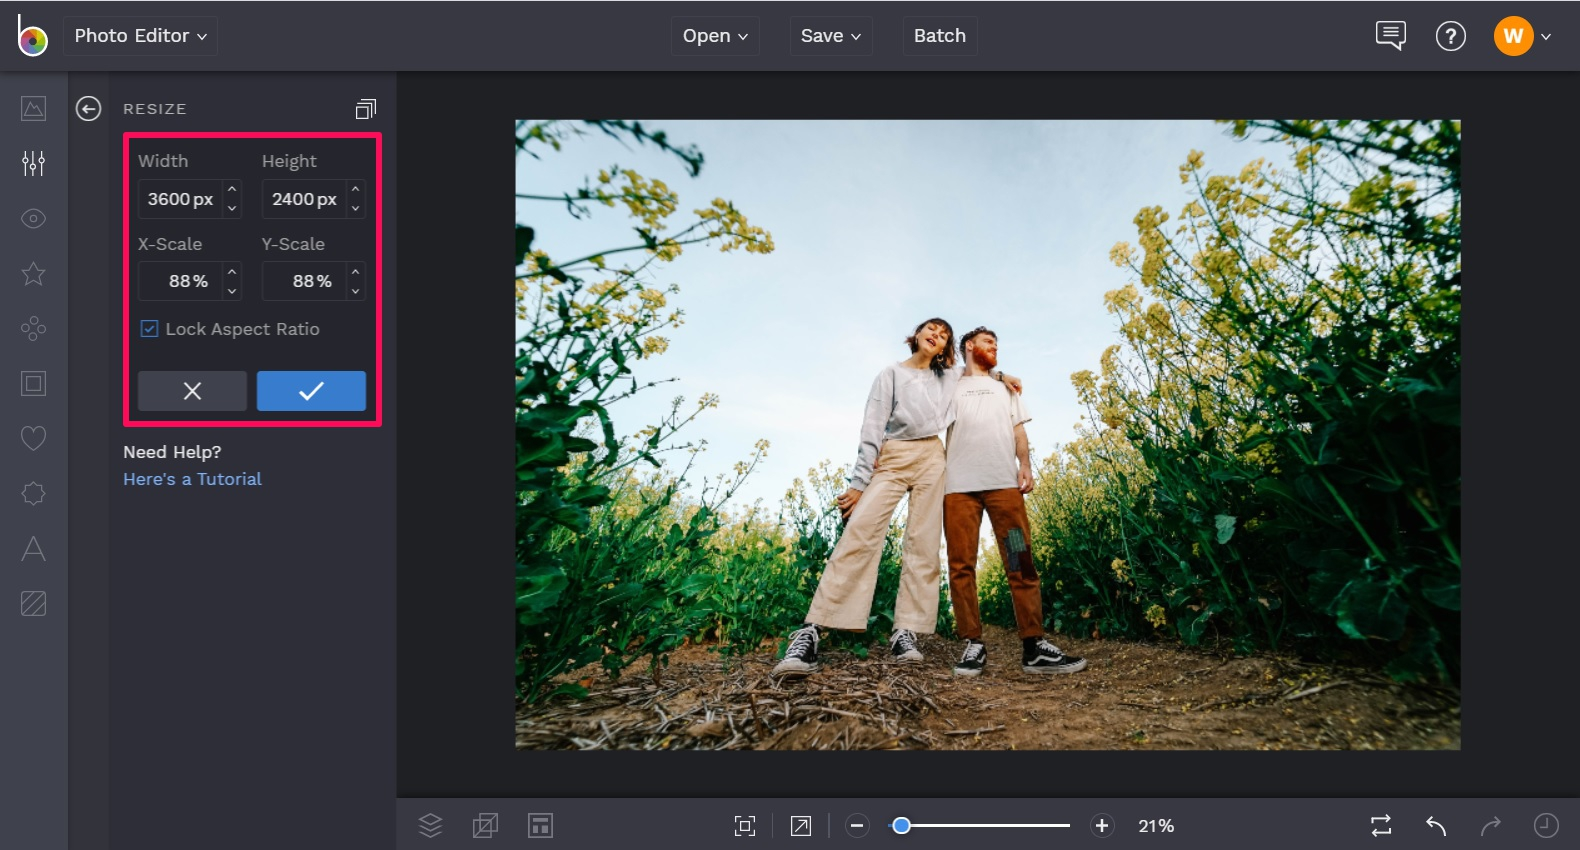 Lock aspect ratio in editing photos for print